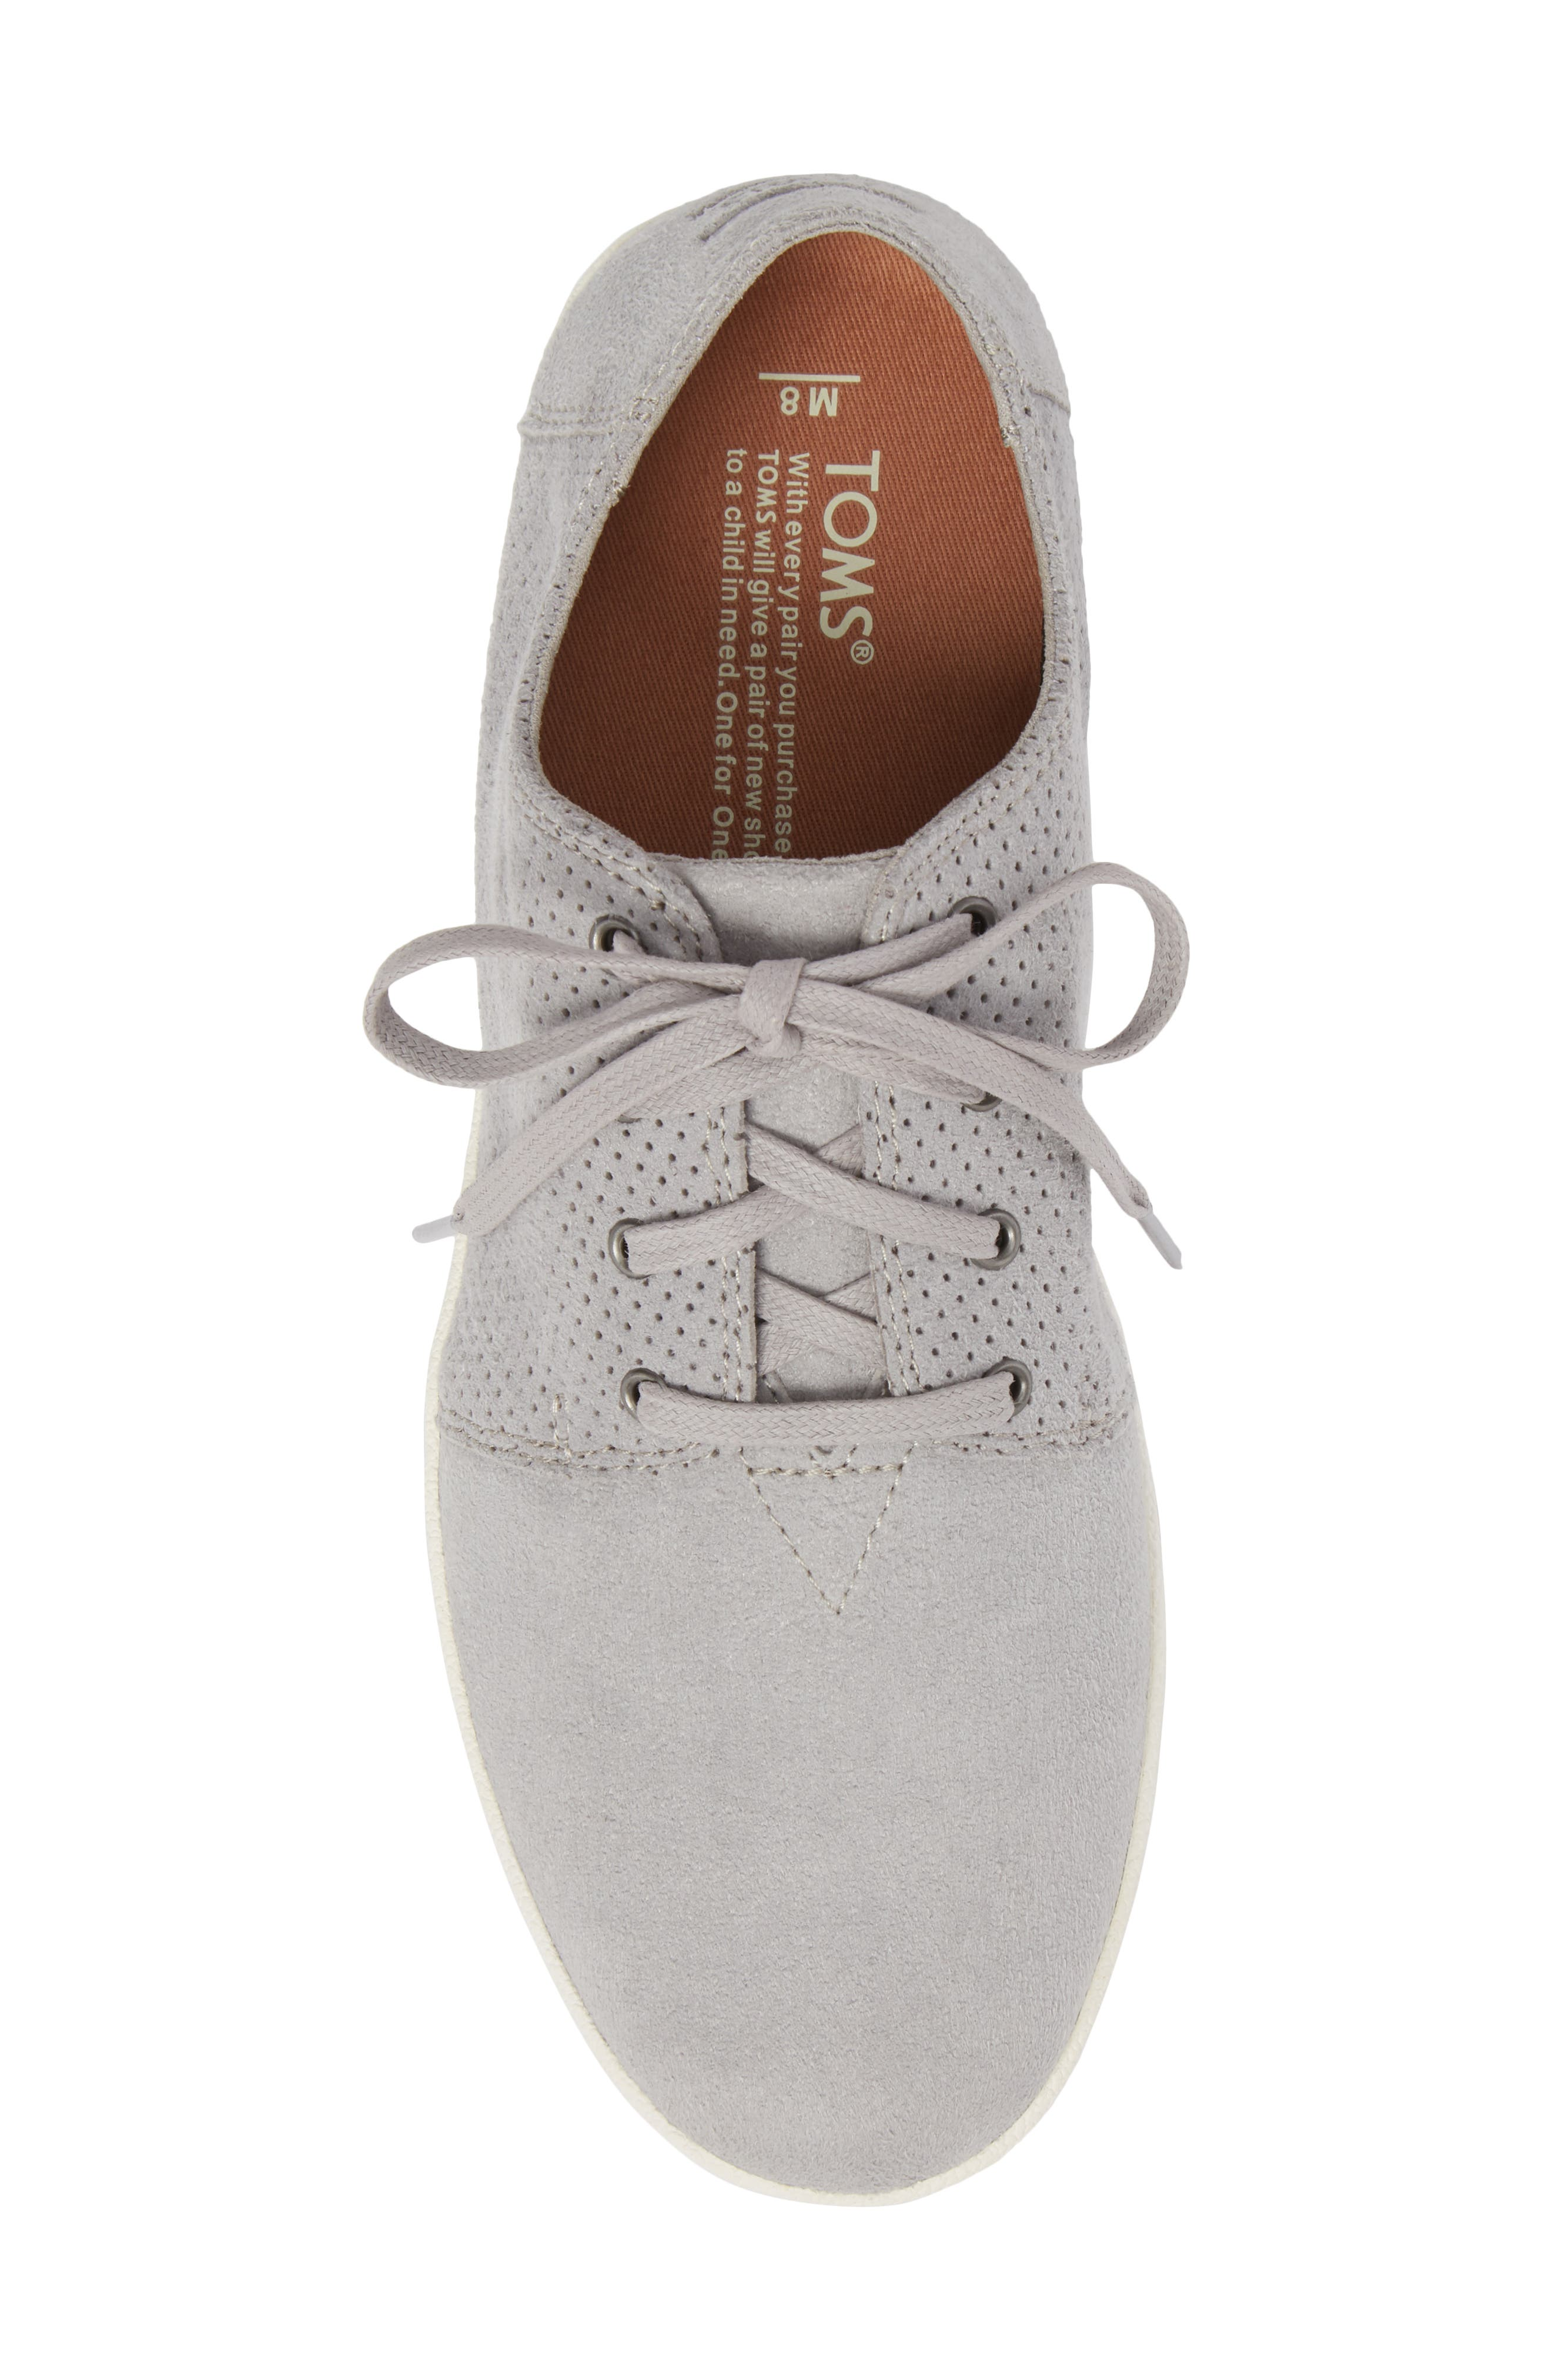 Payton Perforated Sneaker,                             Alternate thumbnail 5, color,                             DRIZZLE GREY PERFORATED